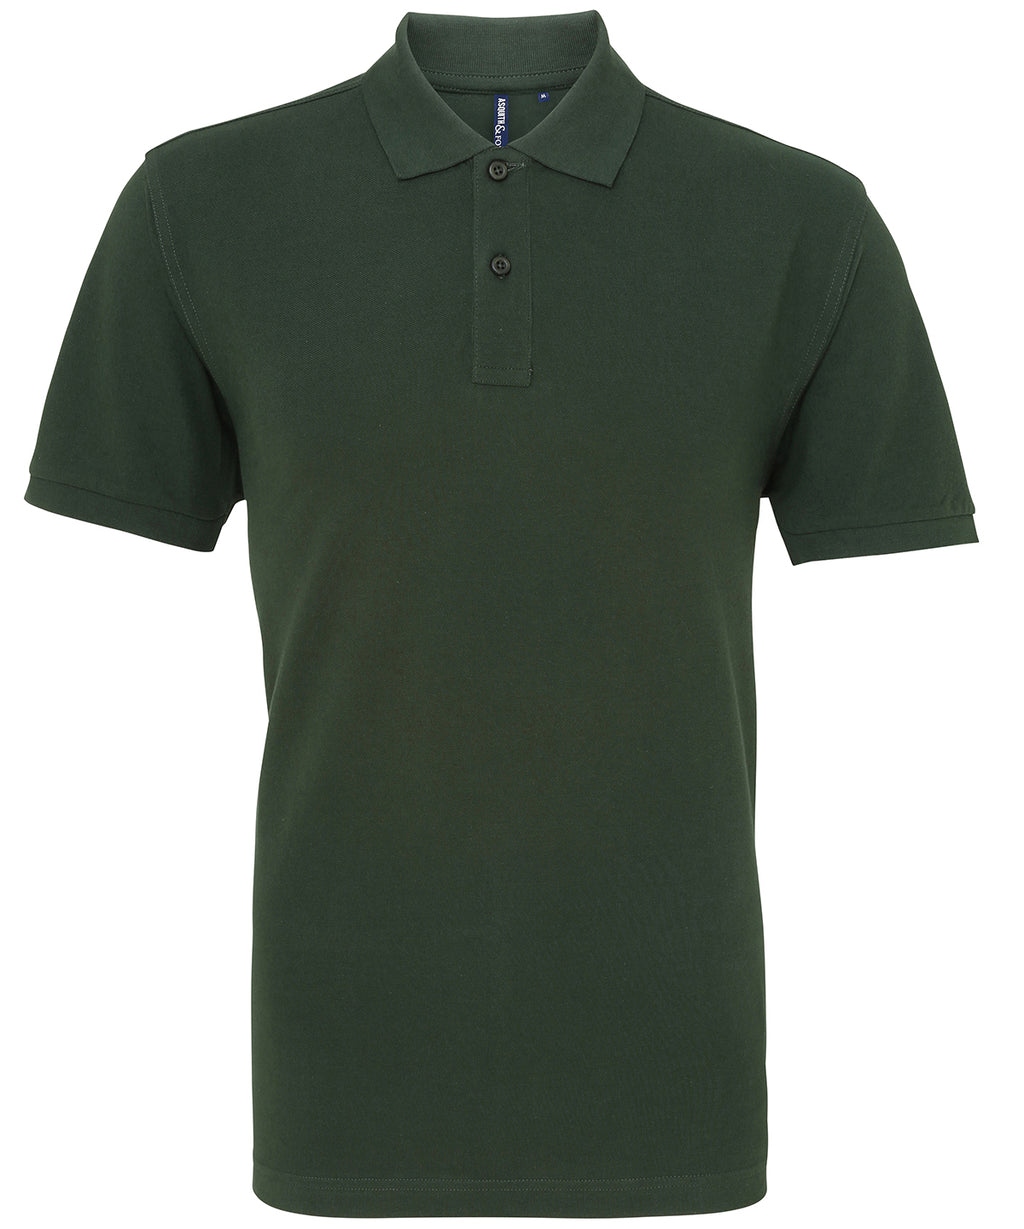 Mens Plain Short Sleeve Polo Shirt - Bottle Green